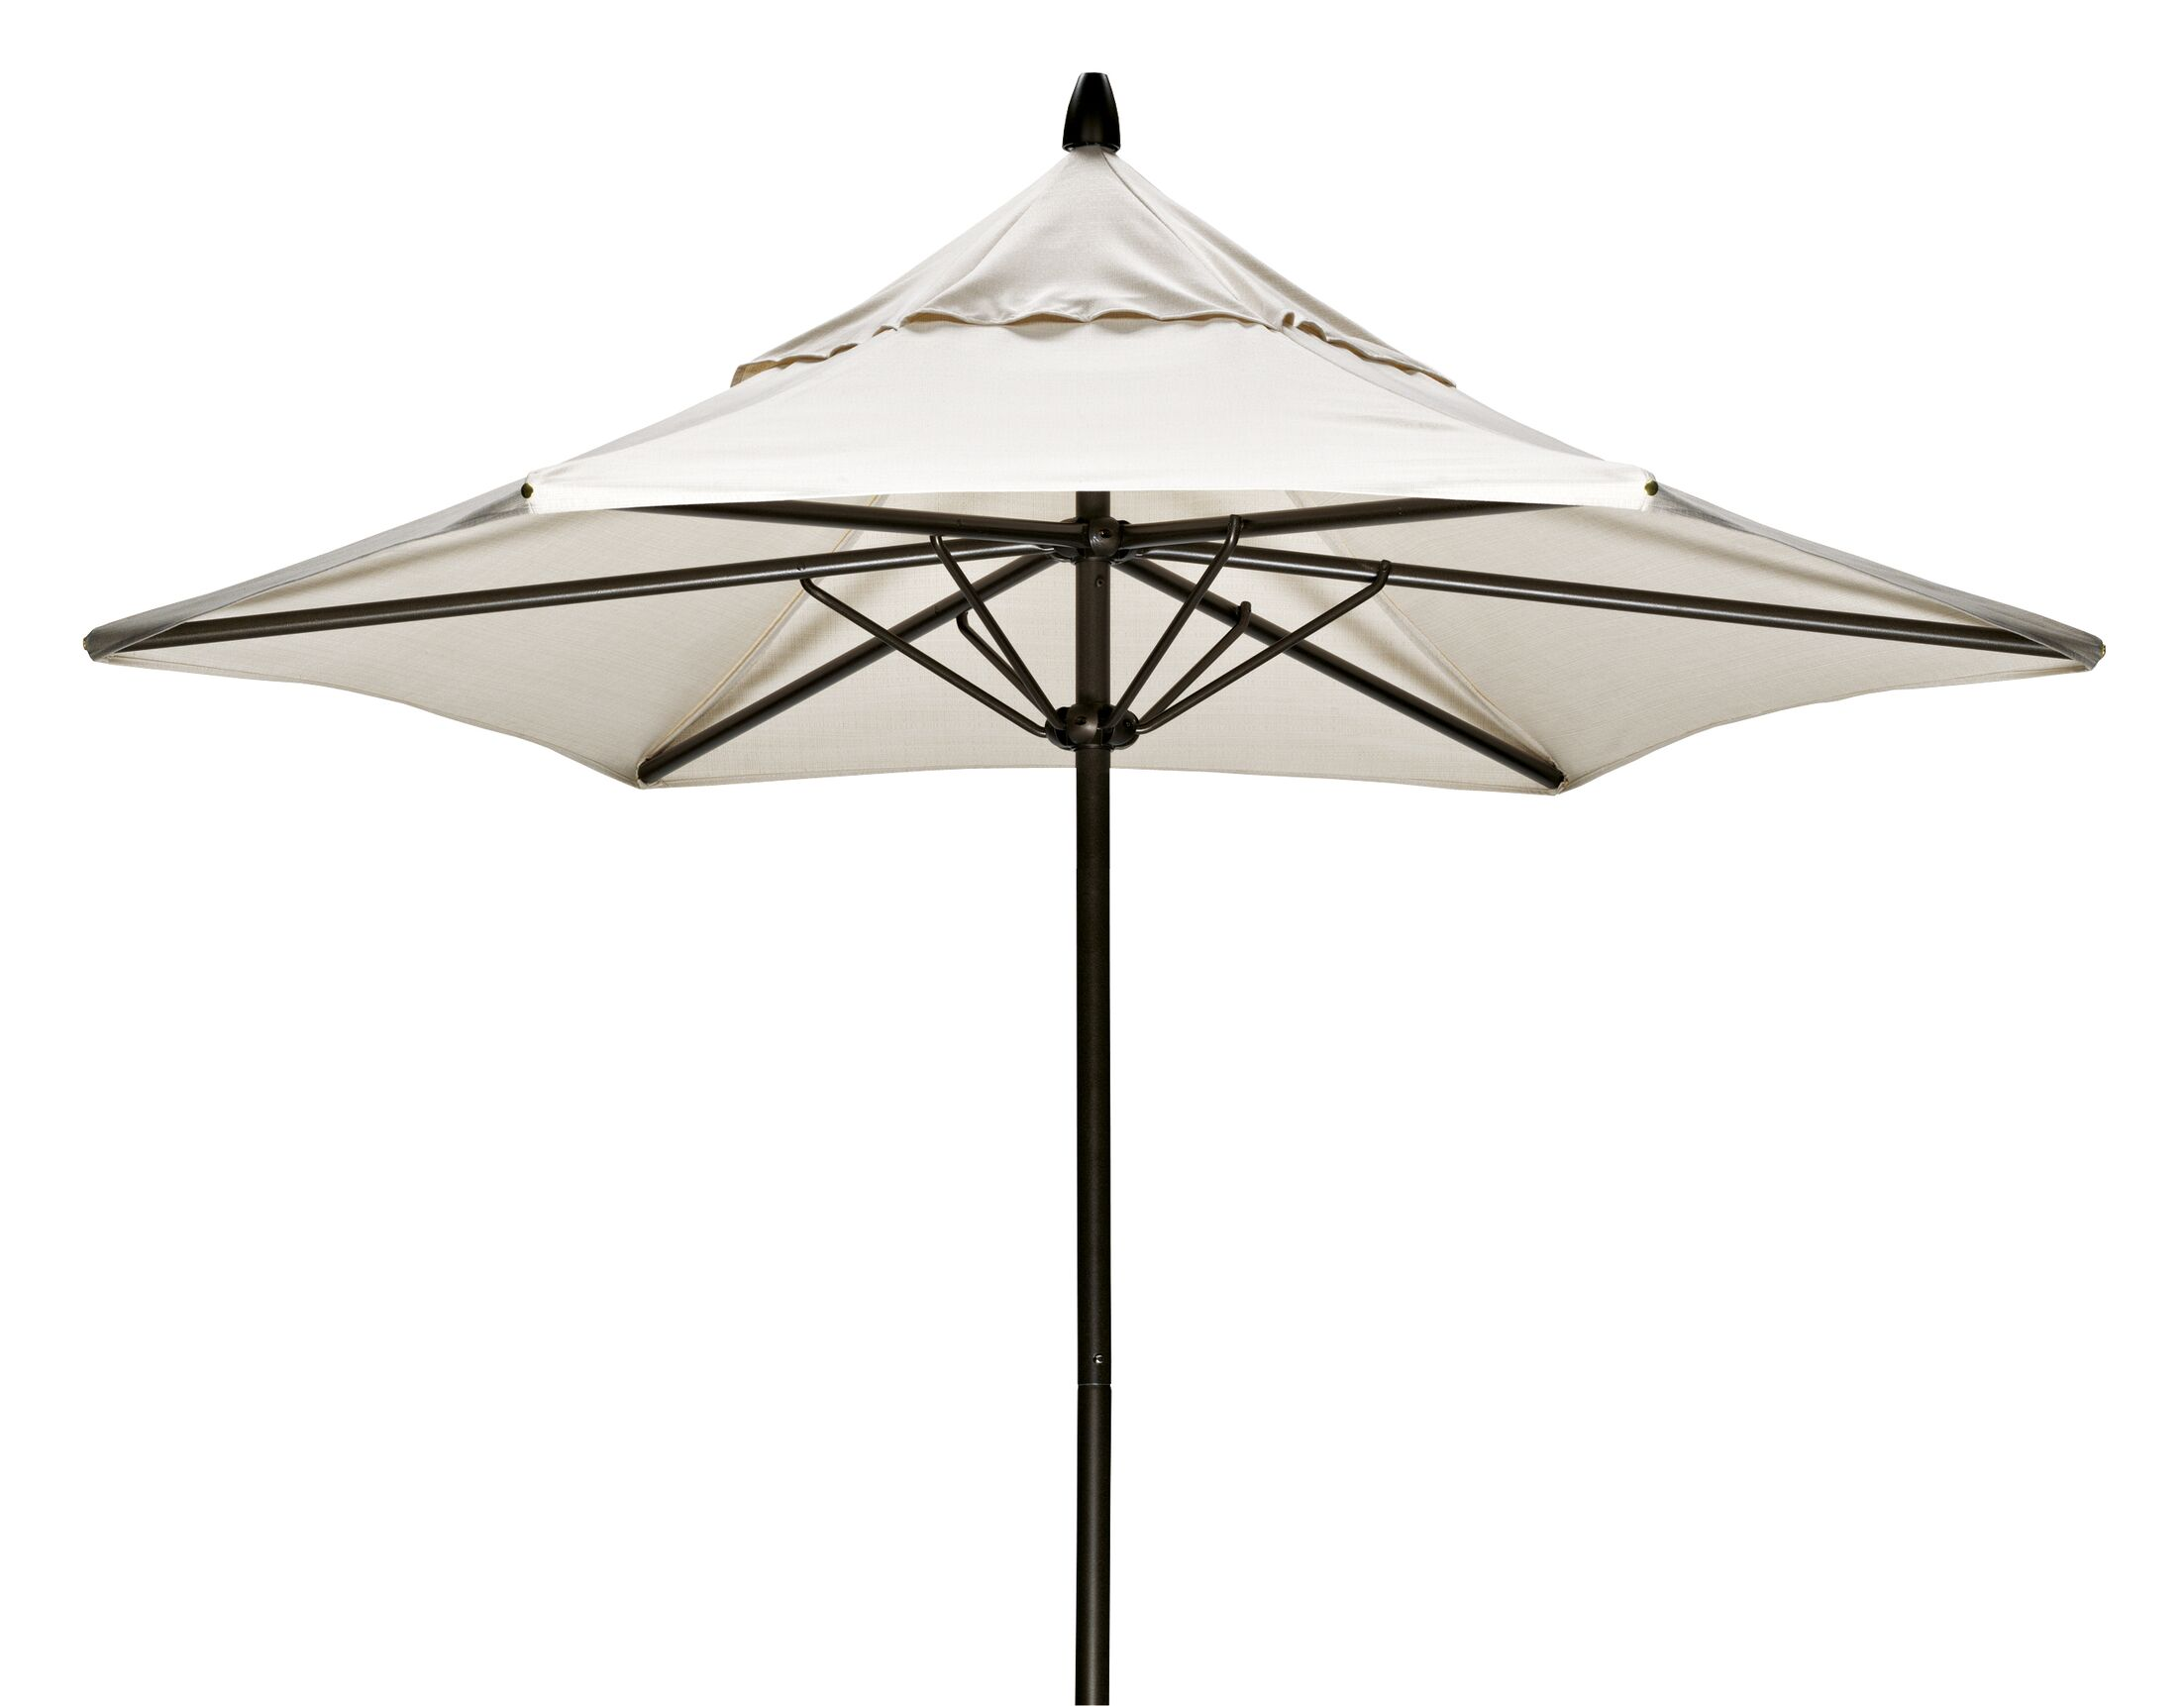 7.5' Market Umbrella Frame Finish: Mocha, Fabric: Paris